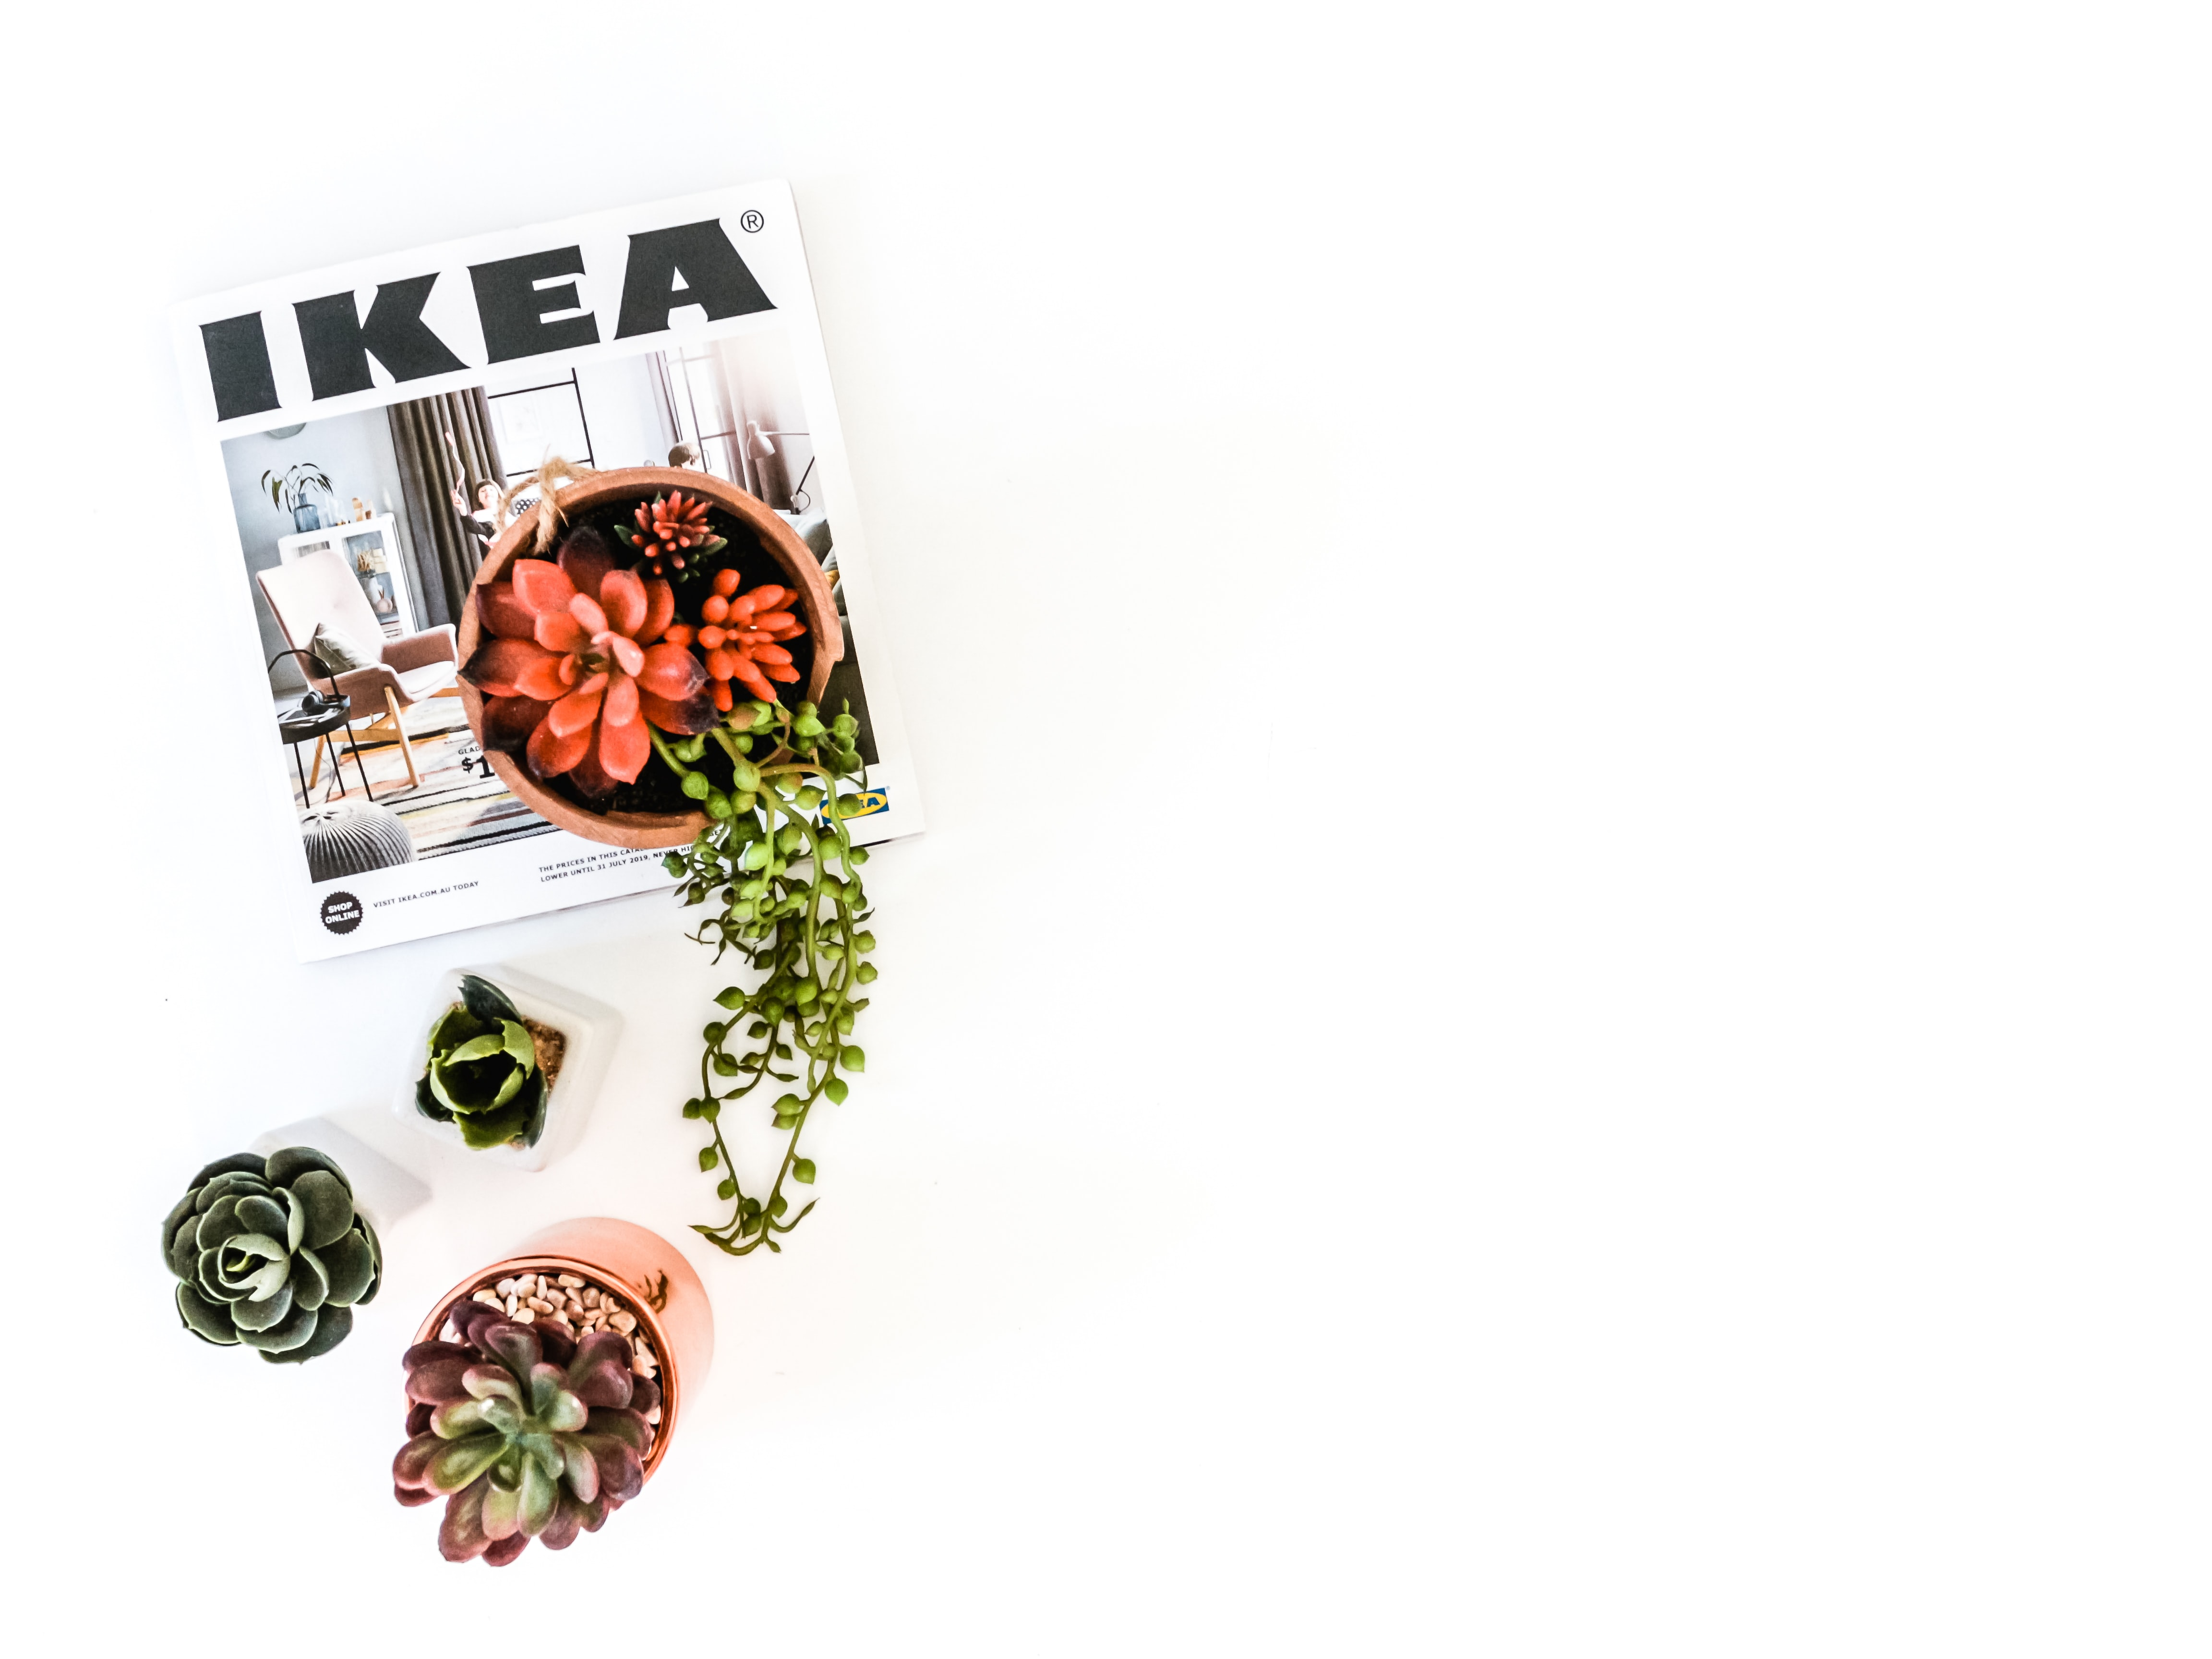 three succulent plants with Ikea book